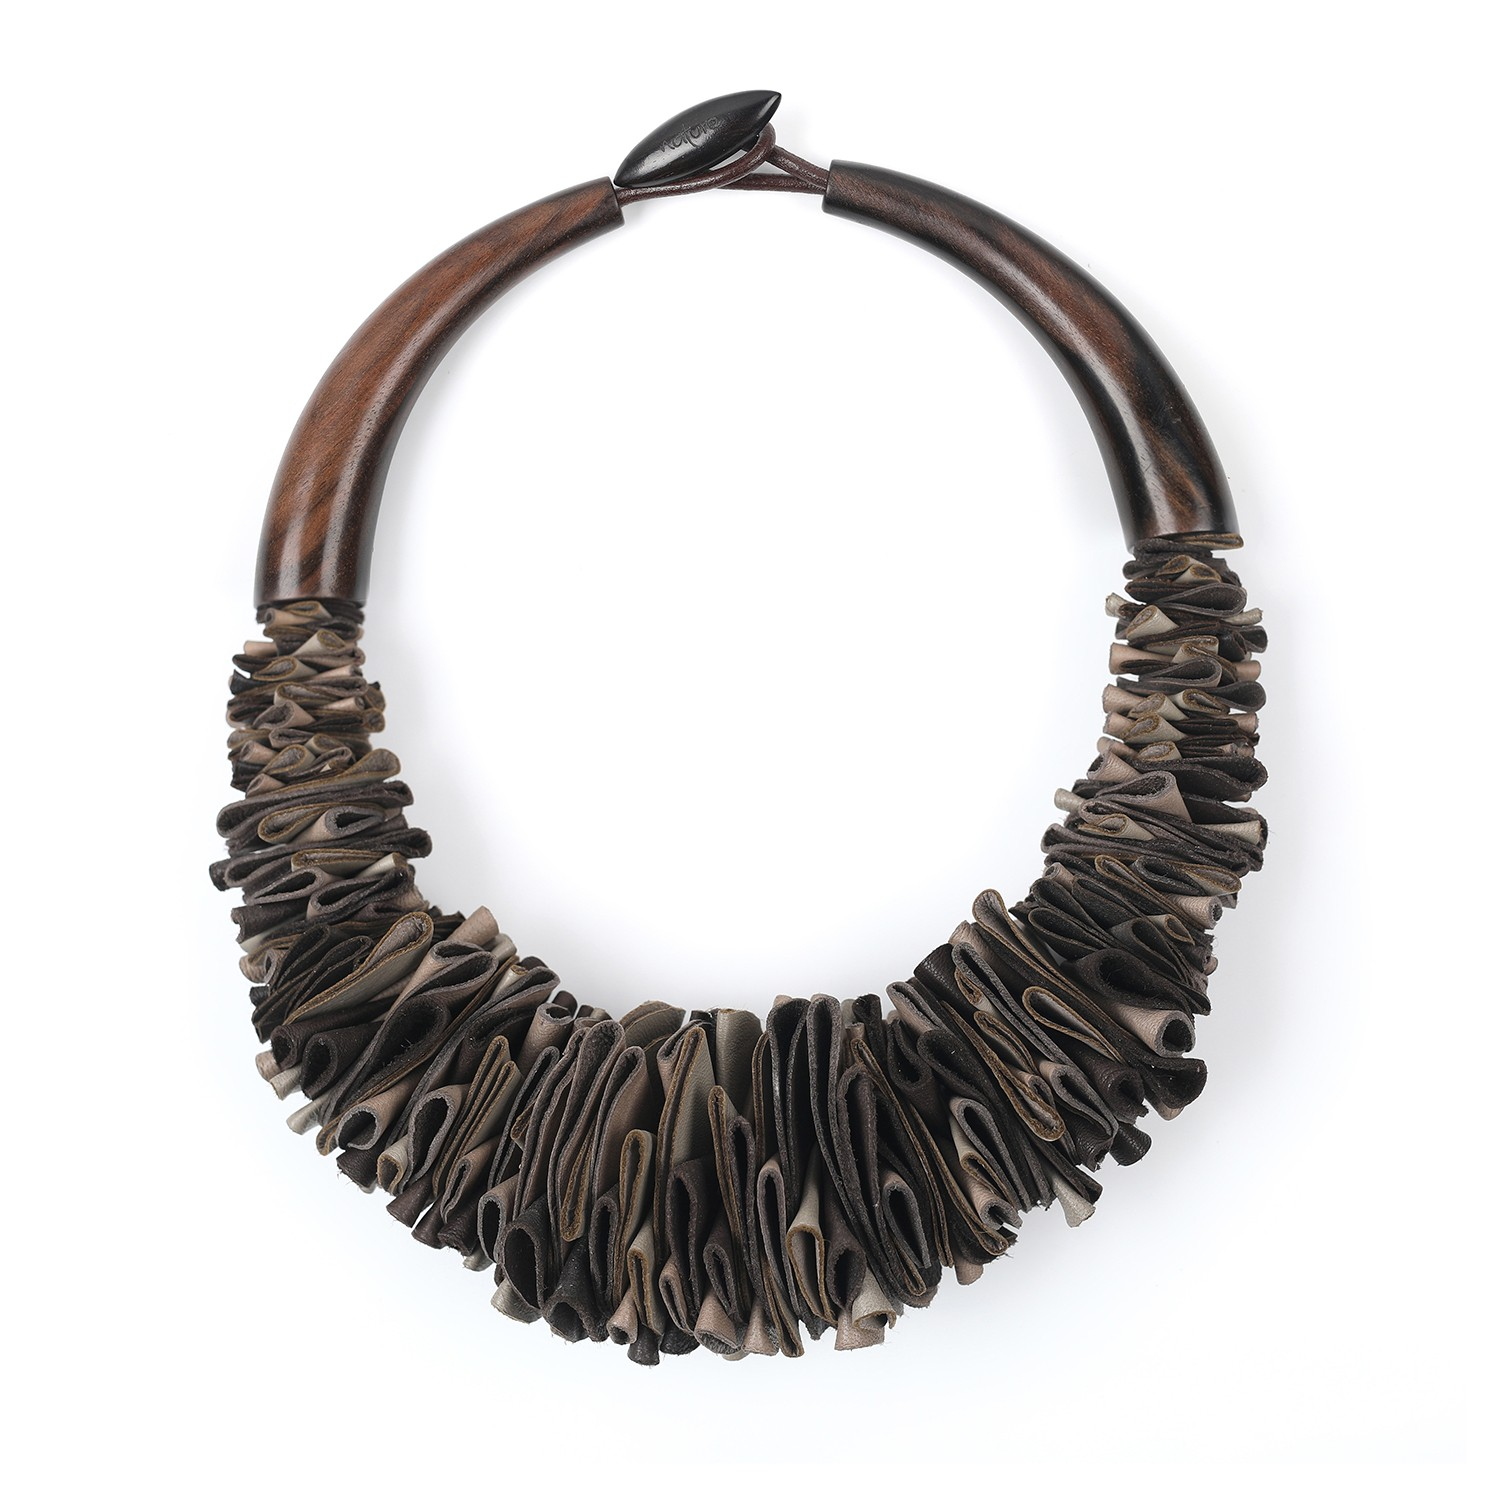 Necklace limited edition brown leather